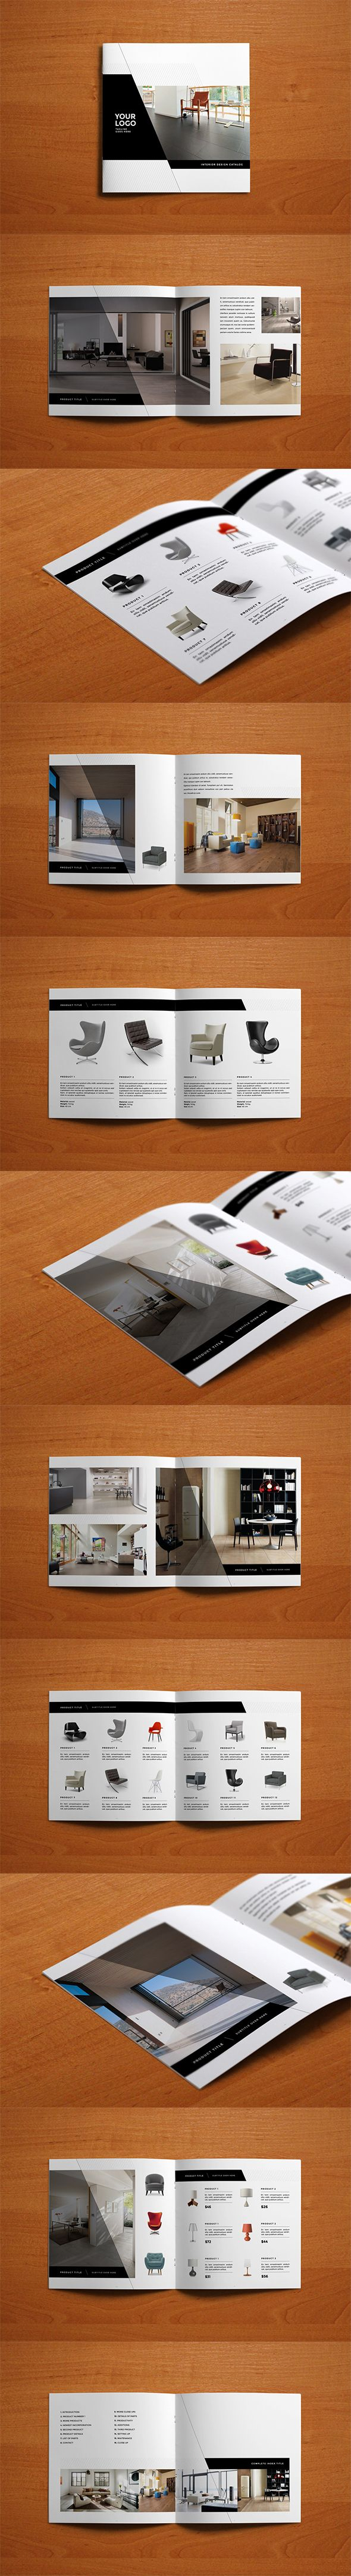 Minimal Interior Design Catalog. Download here: http://graphicriver.net/item/minimal-interior-design-catalog/9849569?ref=abradesign #design #brochure #catalog